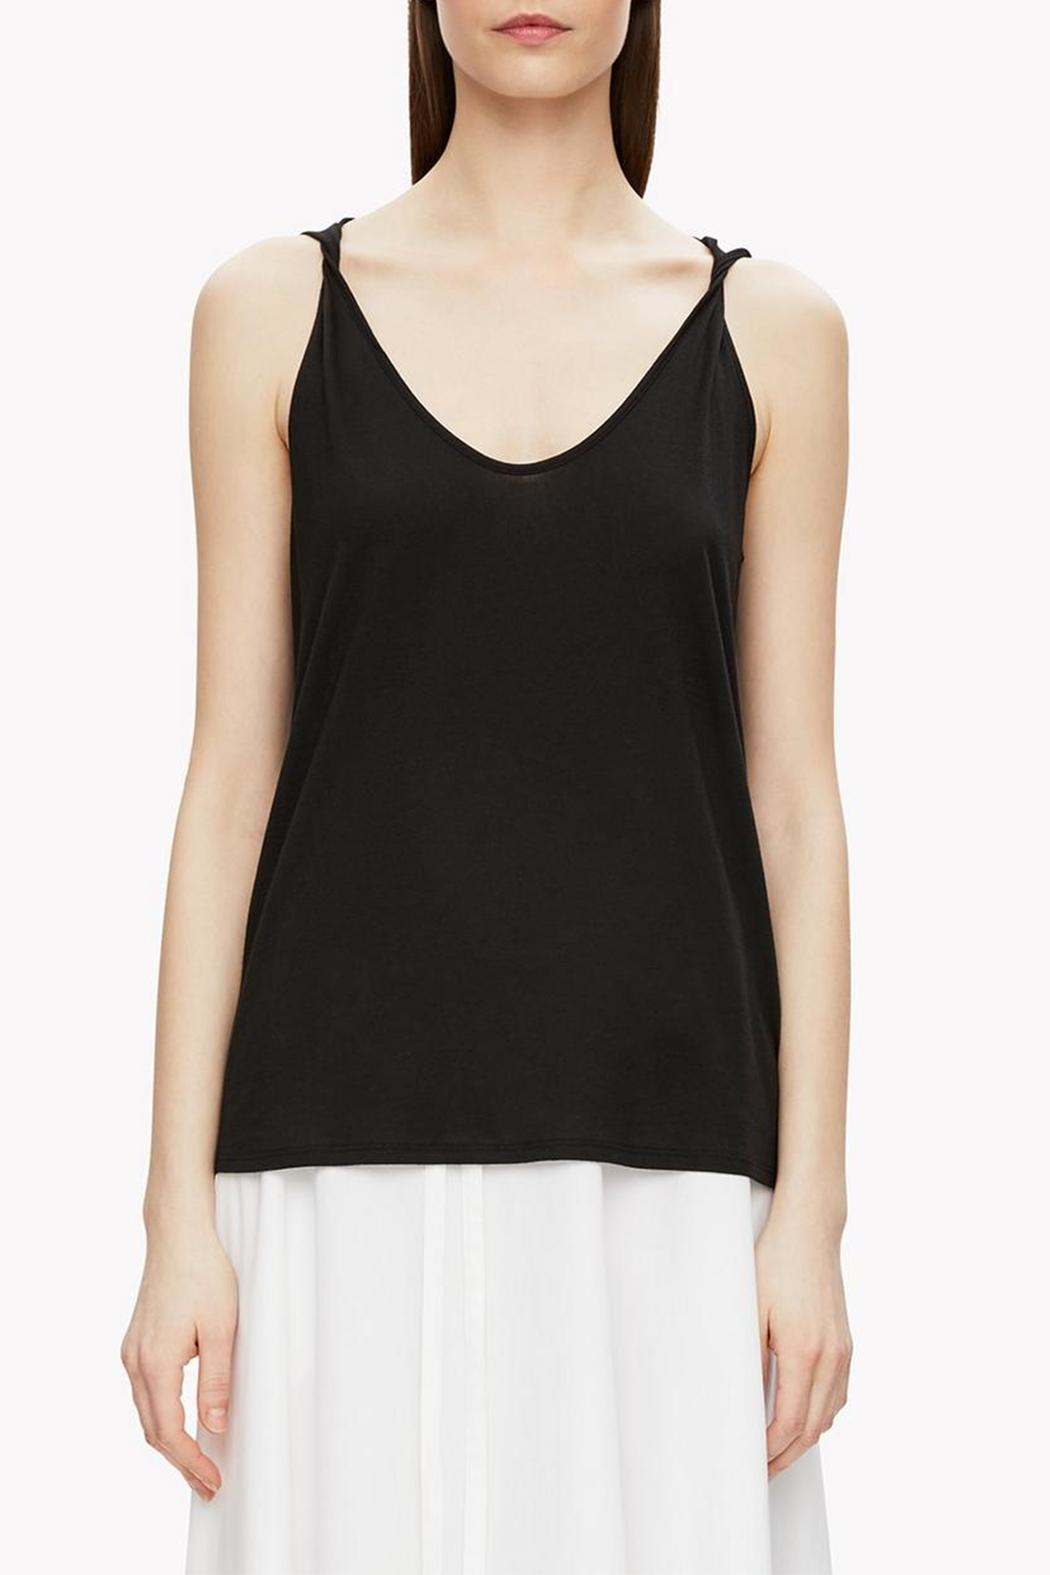 Theory Twisted Strap Tank Top - Main Image